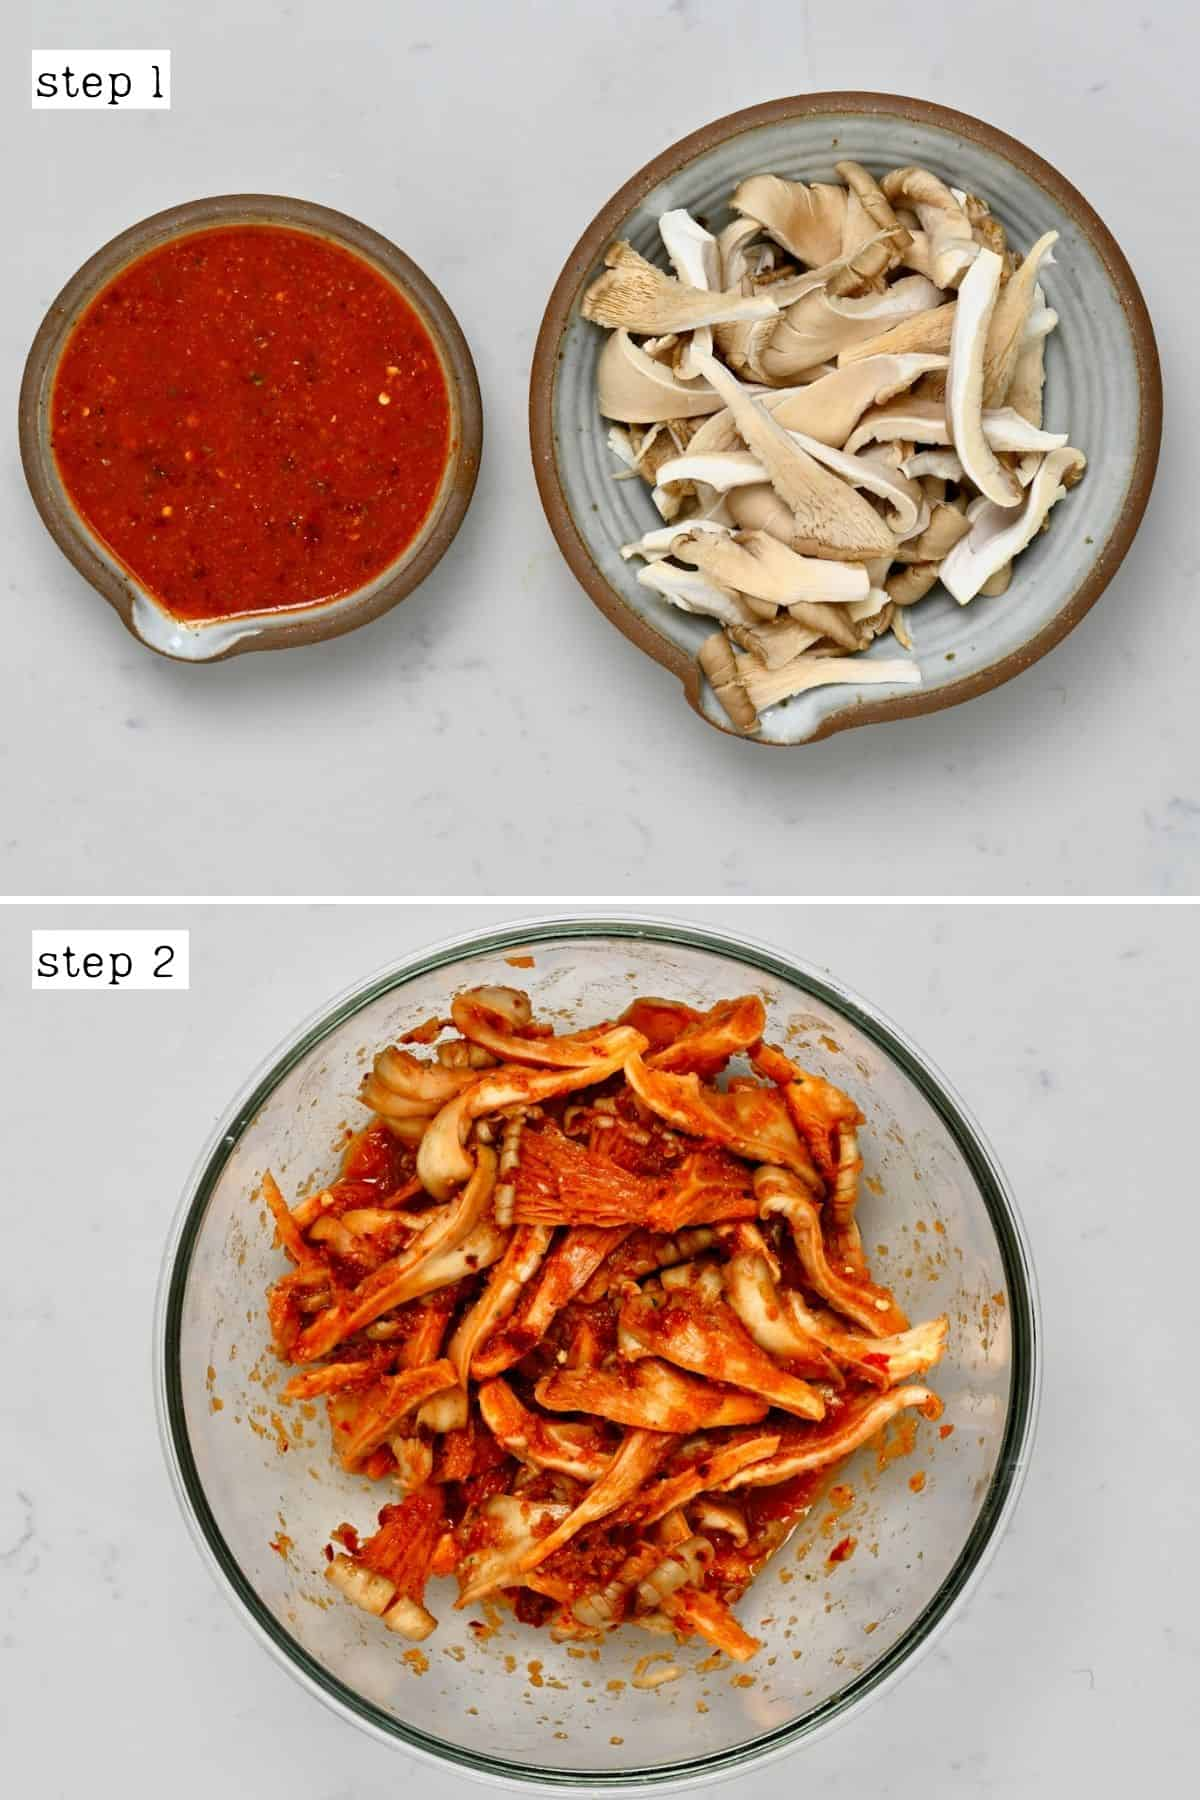 Steps for mixing mushrooms with marinade